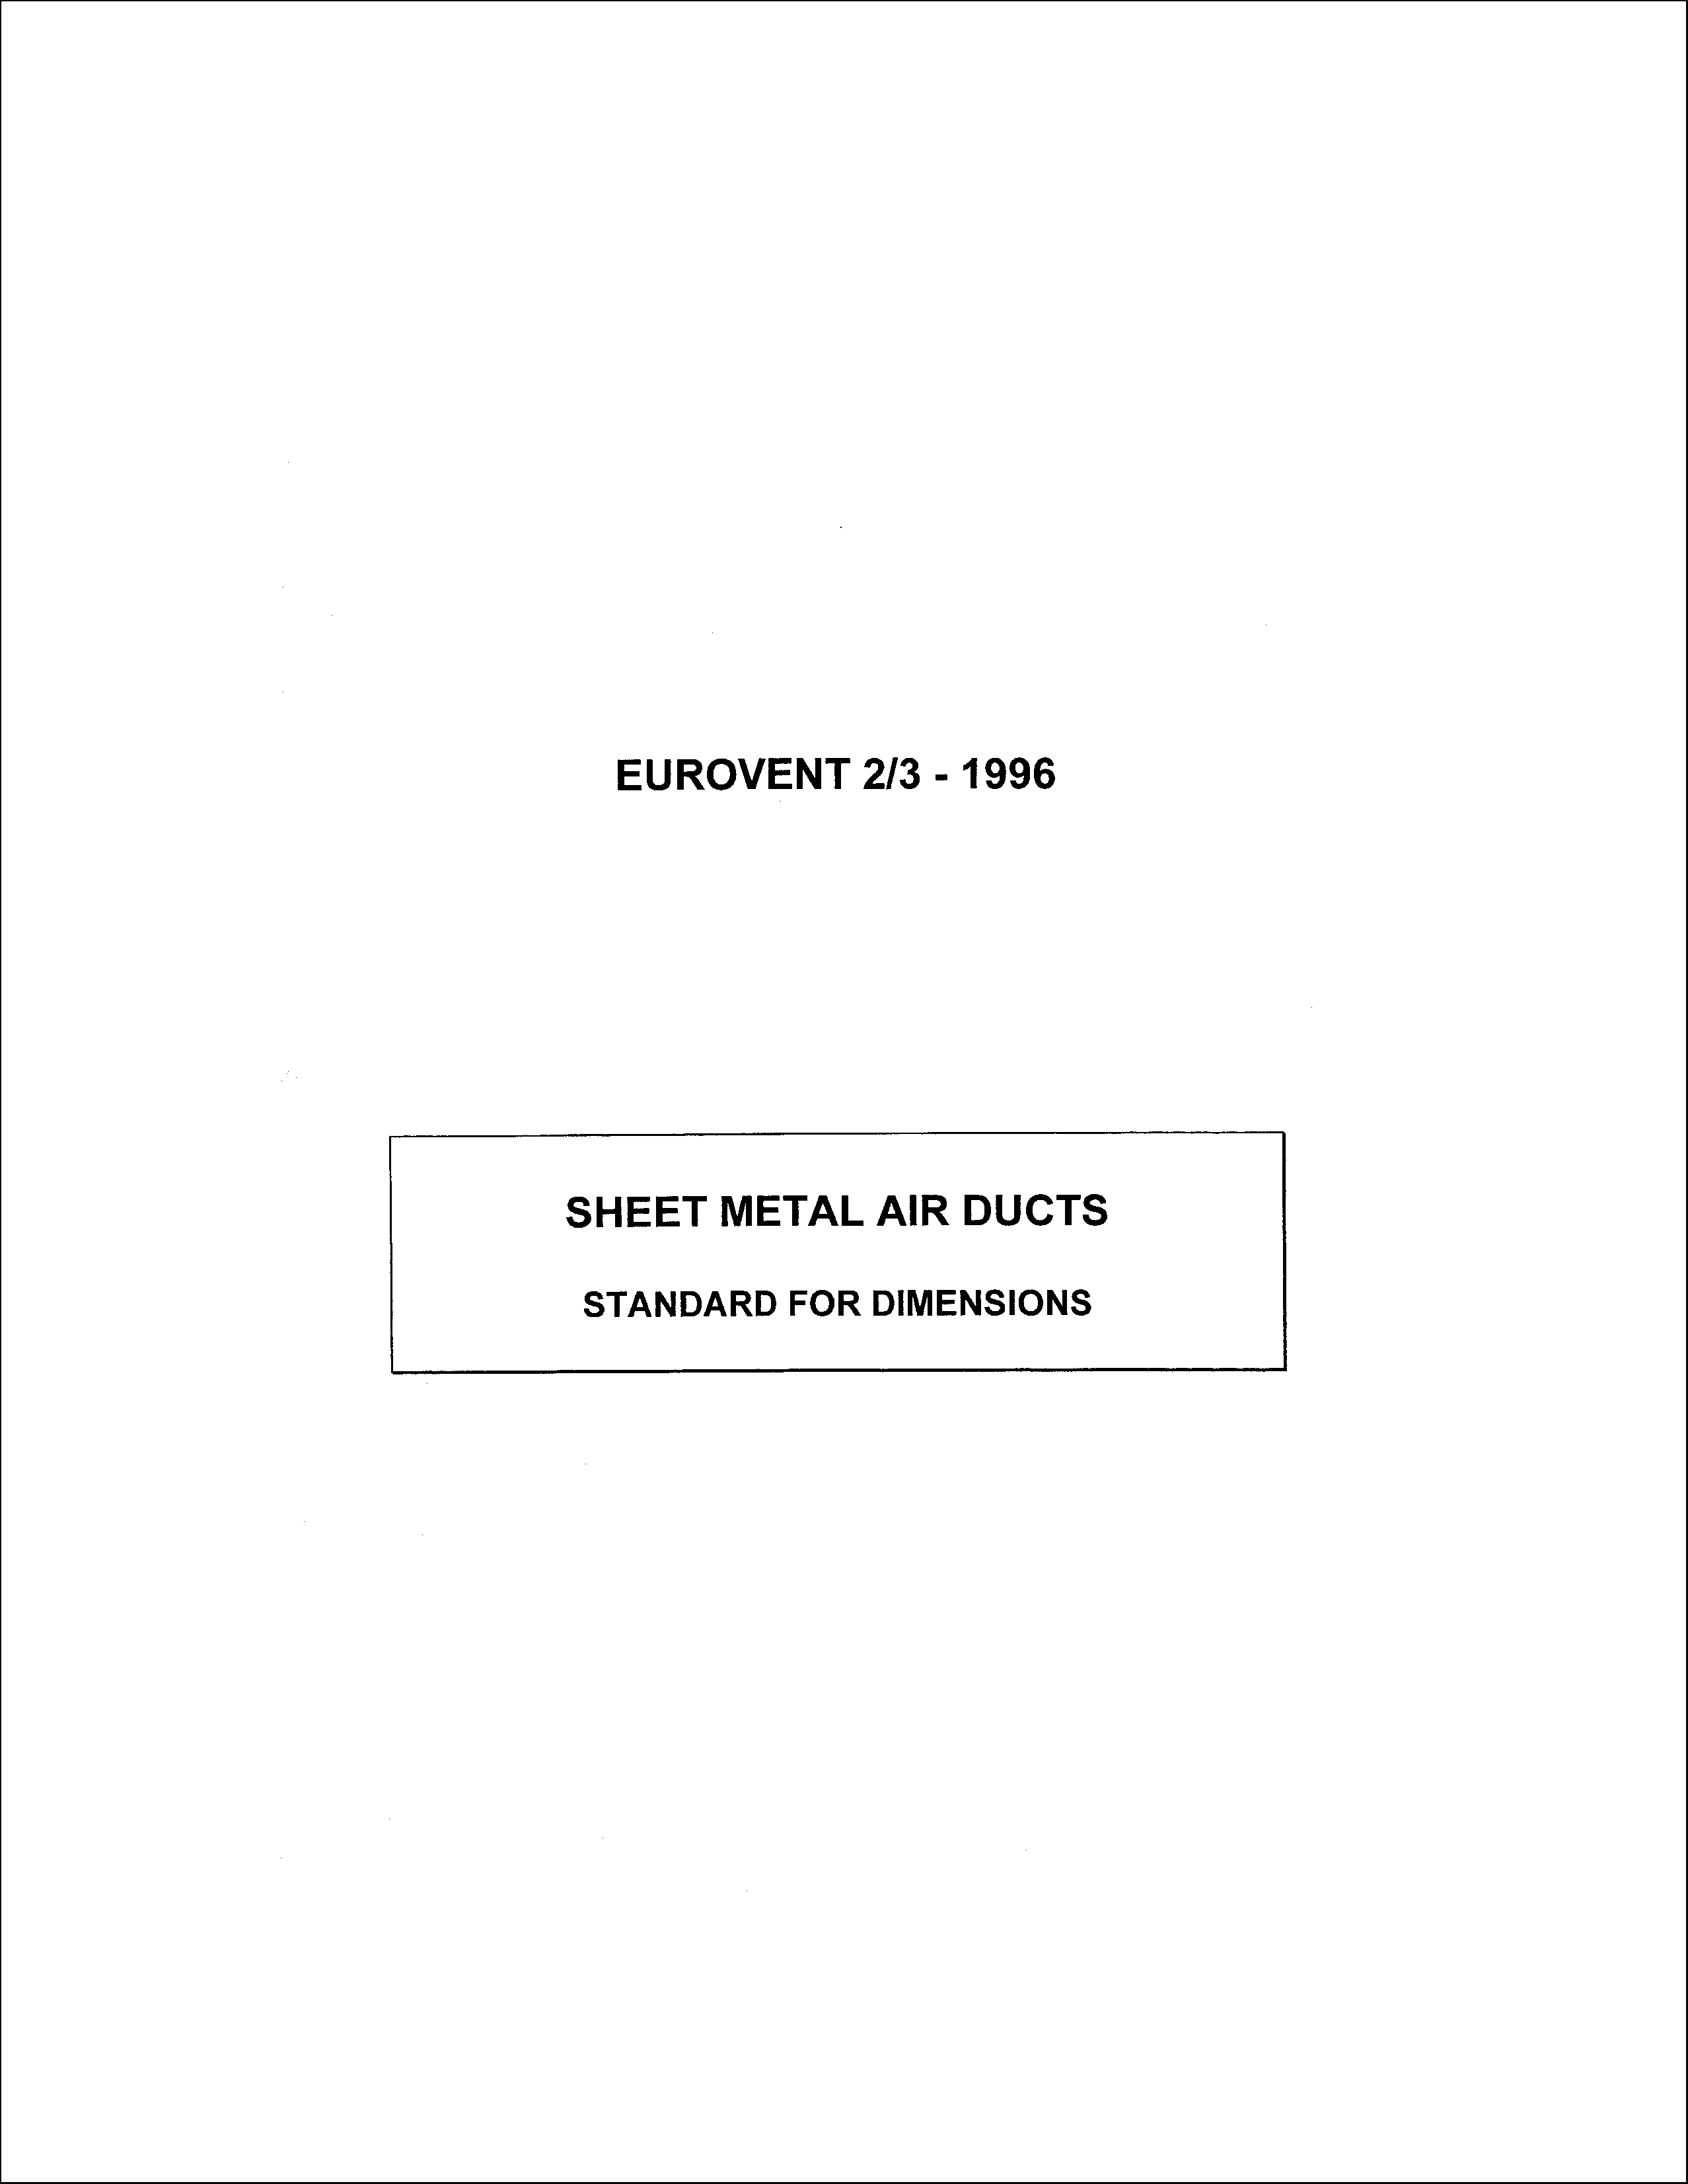 1996 - Sheet metal air ducts - standard for dimensions